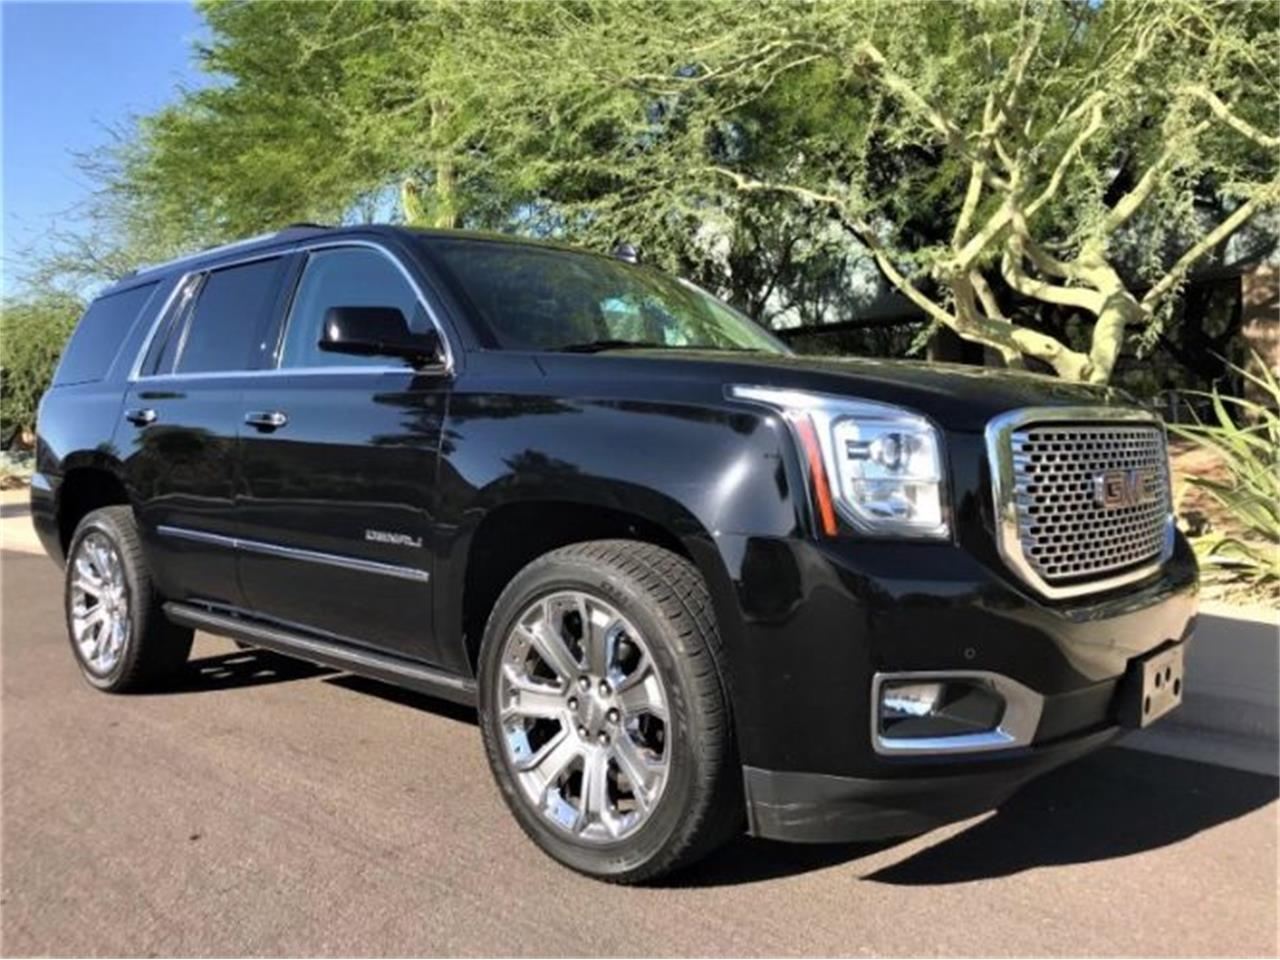 2015 Gmc Yukon Denali For Sale Cc 1127420 Large Picture Of 15 O5x8